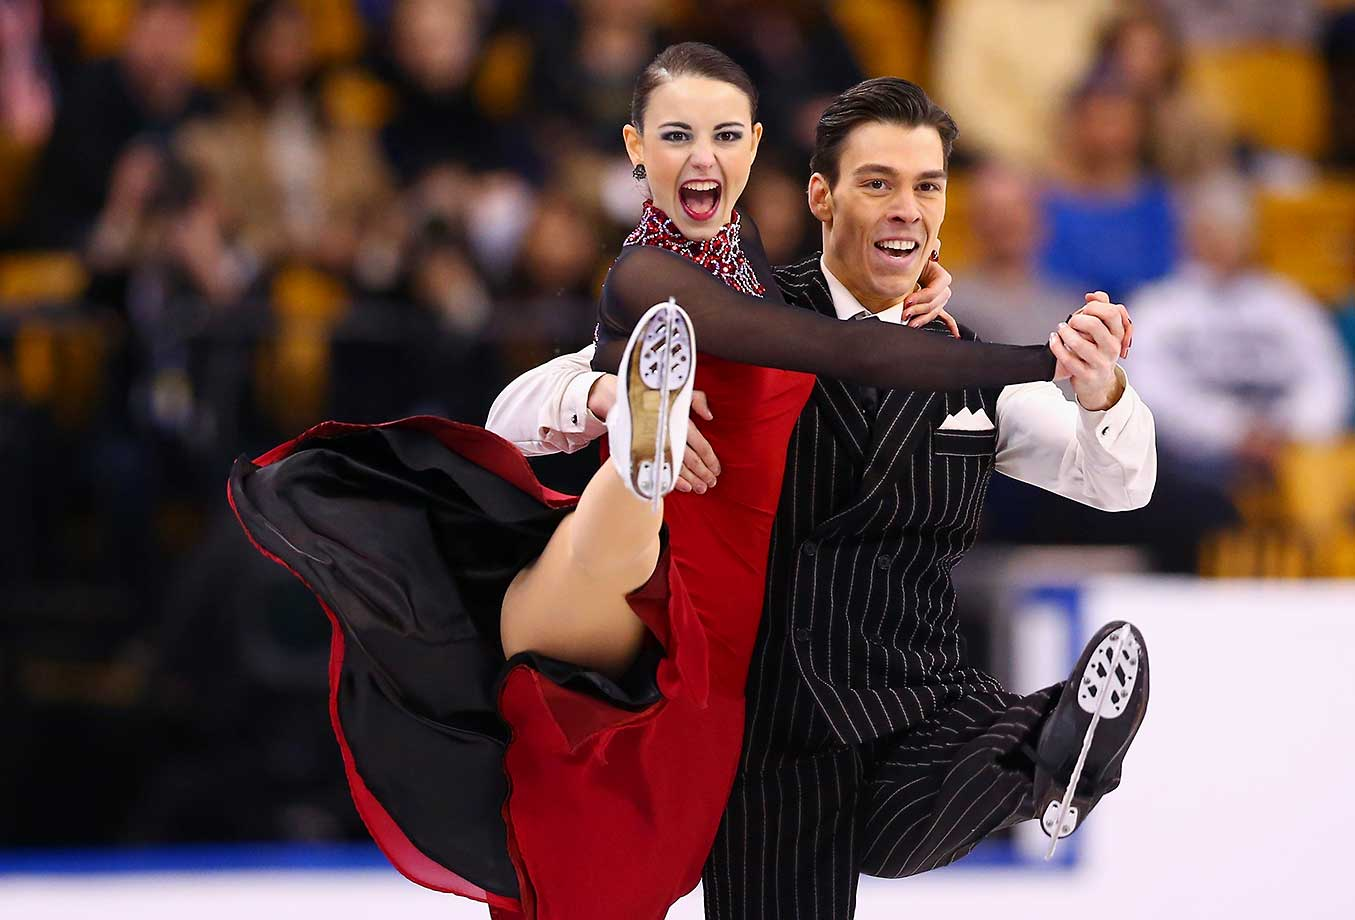 Federica Testa and Lukas Csolley of Slovakia compete during Day 3 of the ISU World Figure Skating Championships.